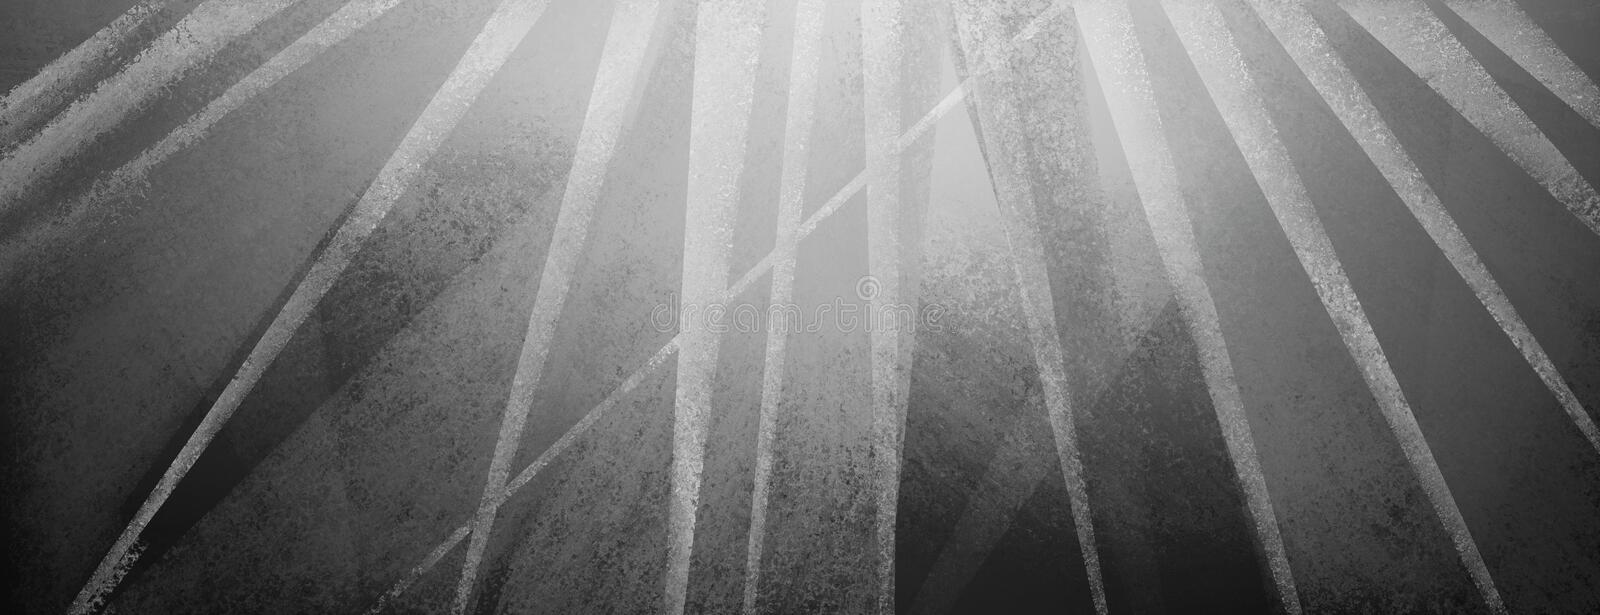 Modern black background with distressed white and gray stripes and triangles stock illustration